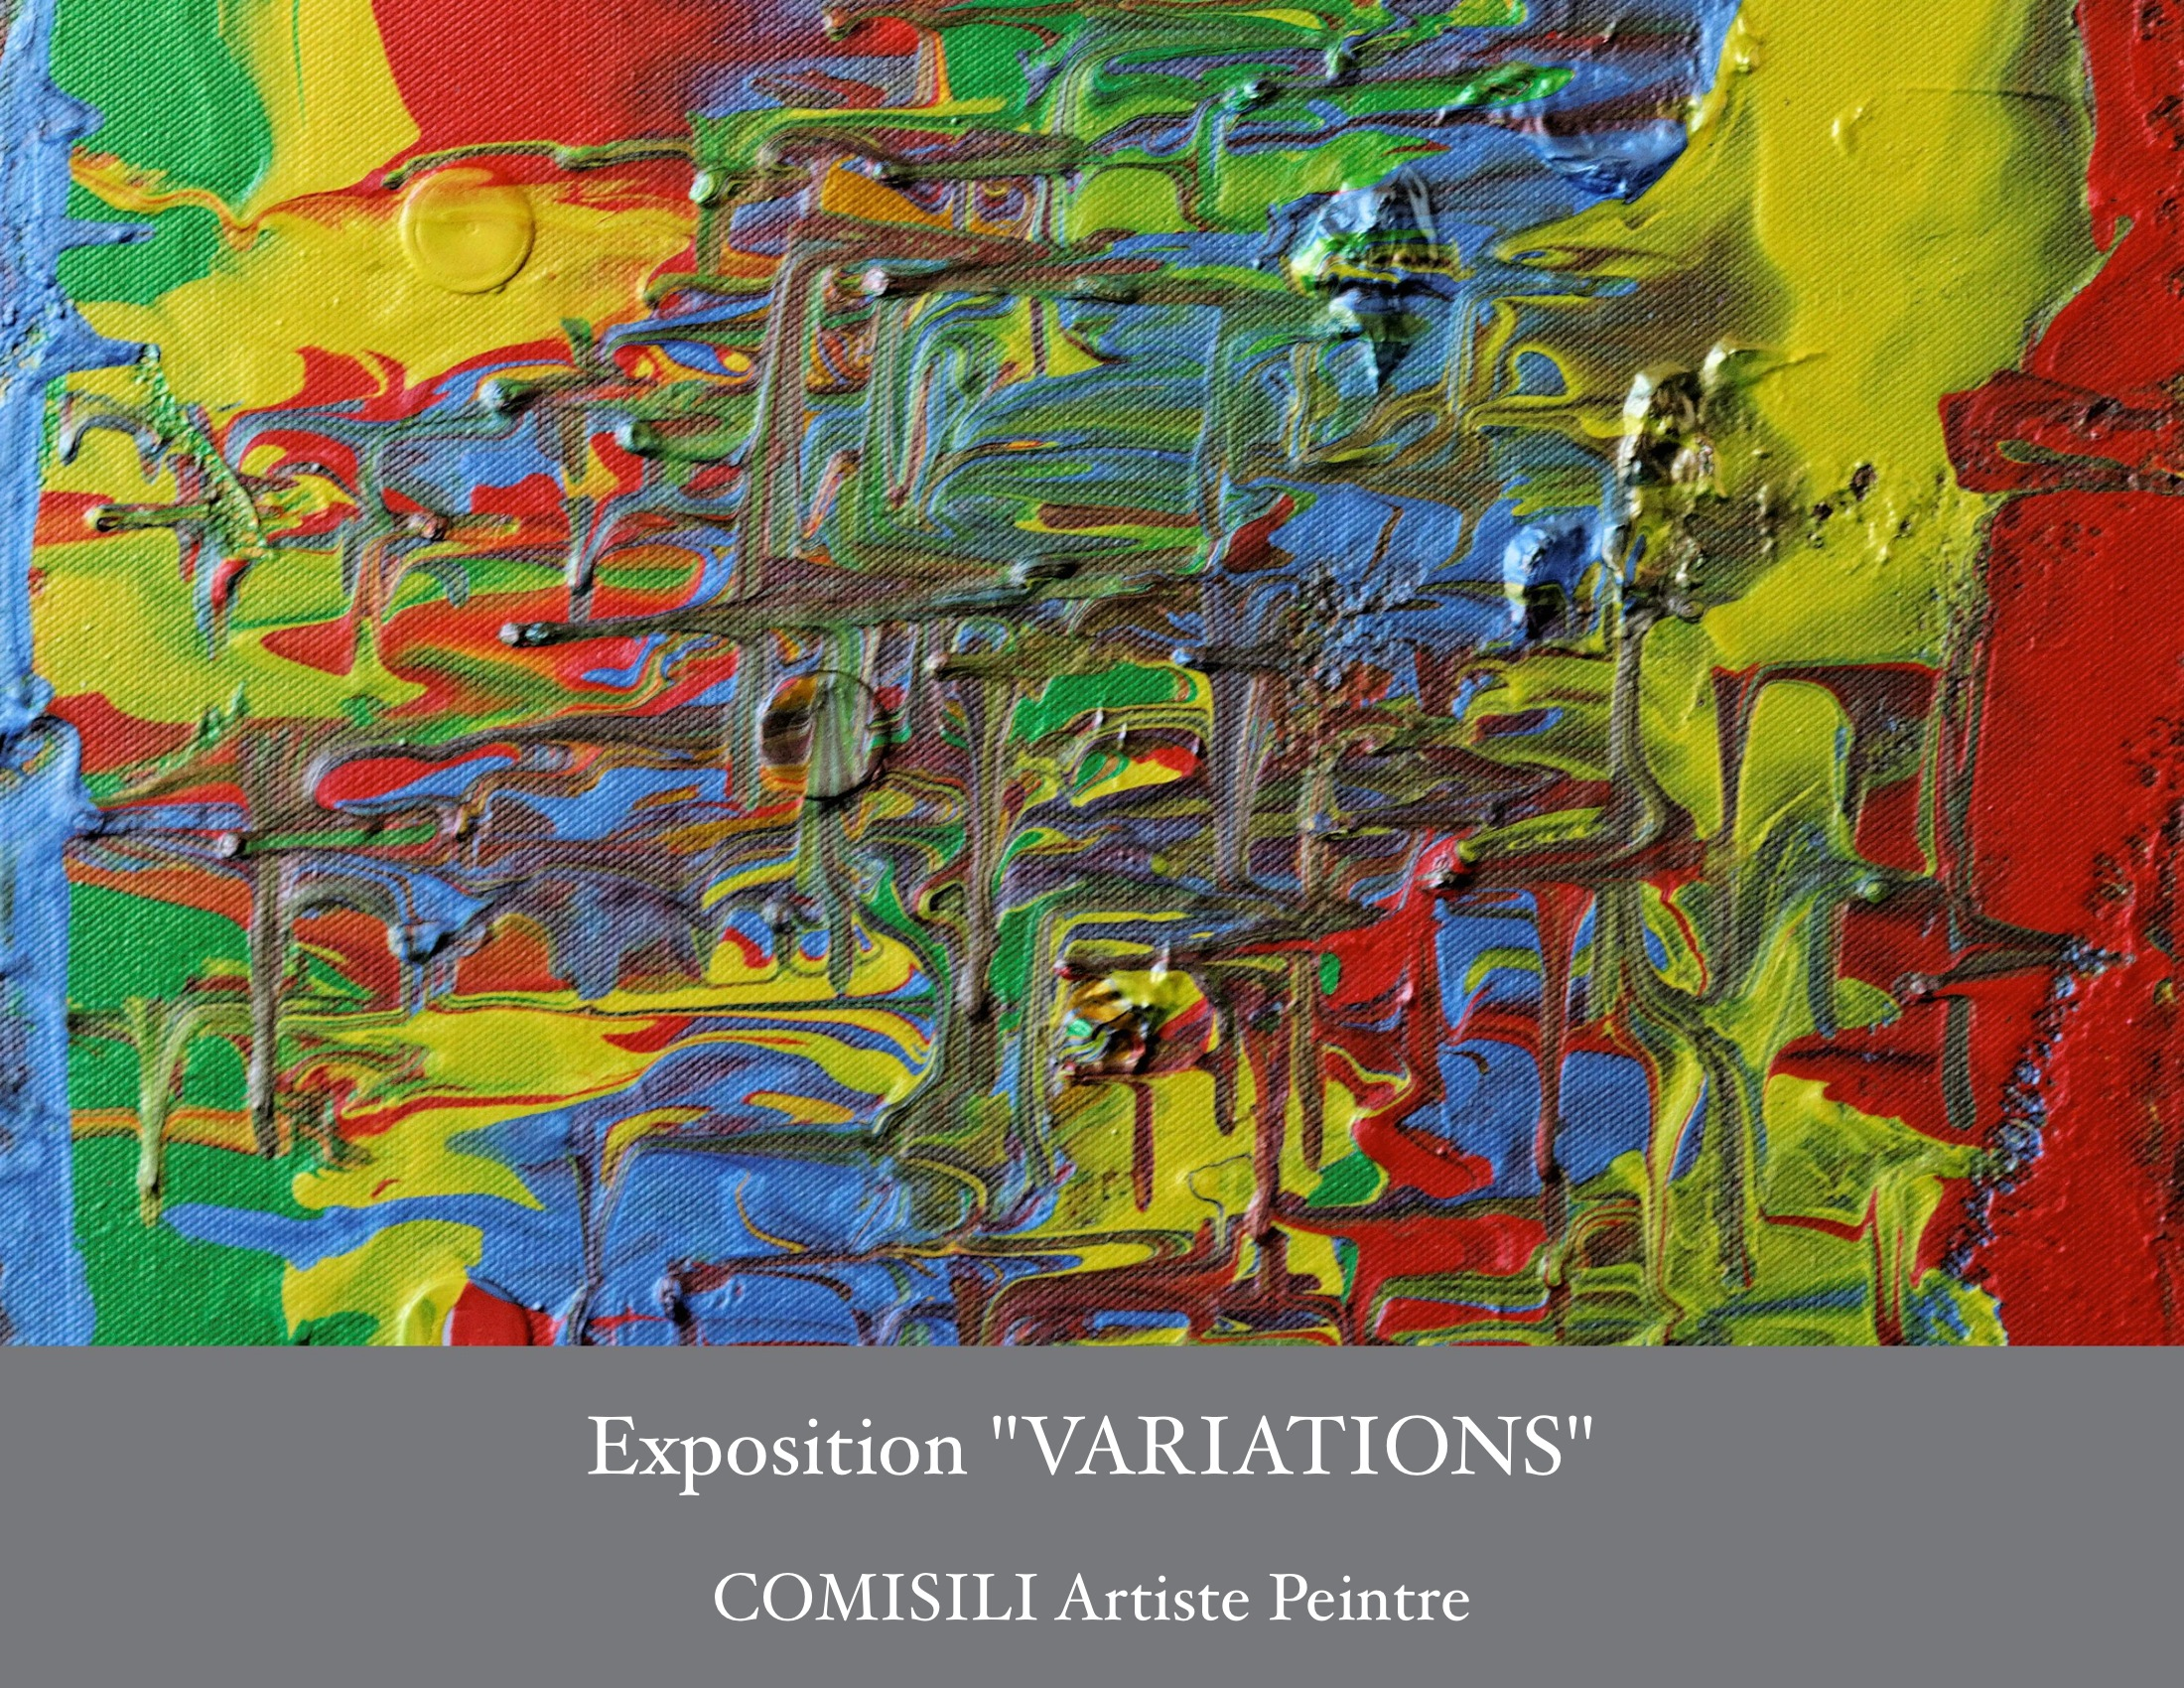 Catalogue Exposition Variations Comisili